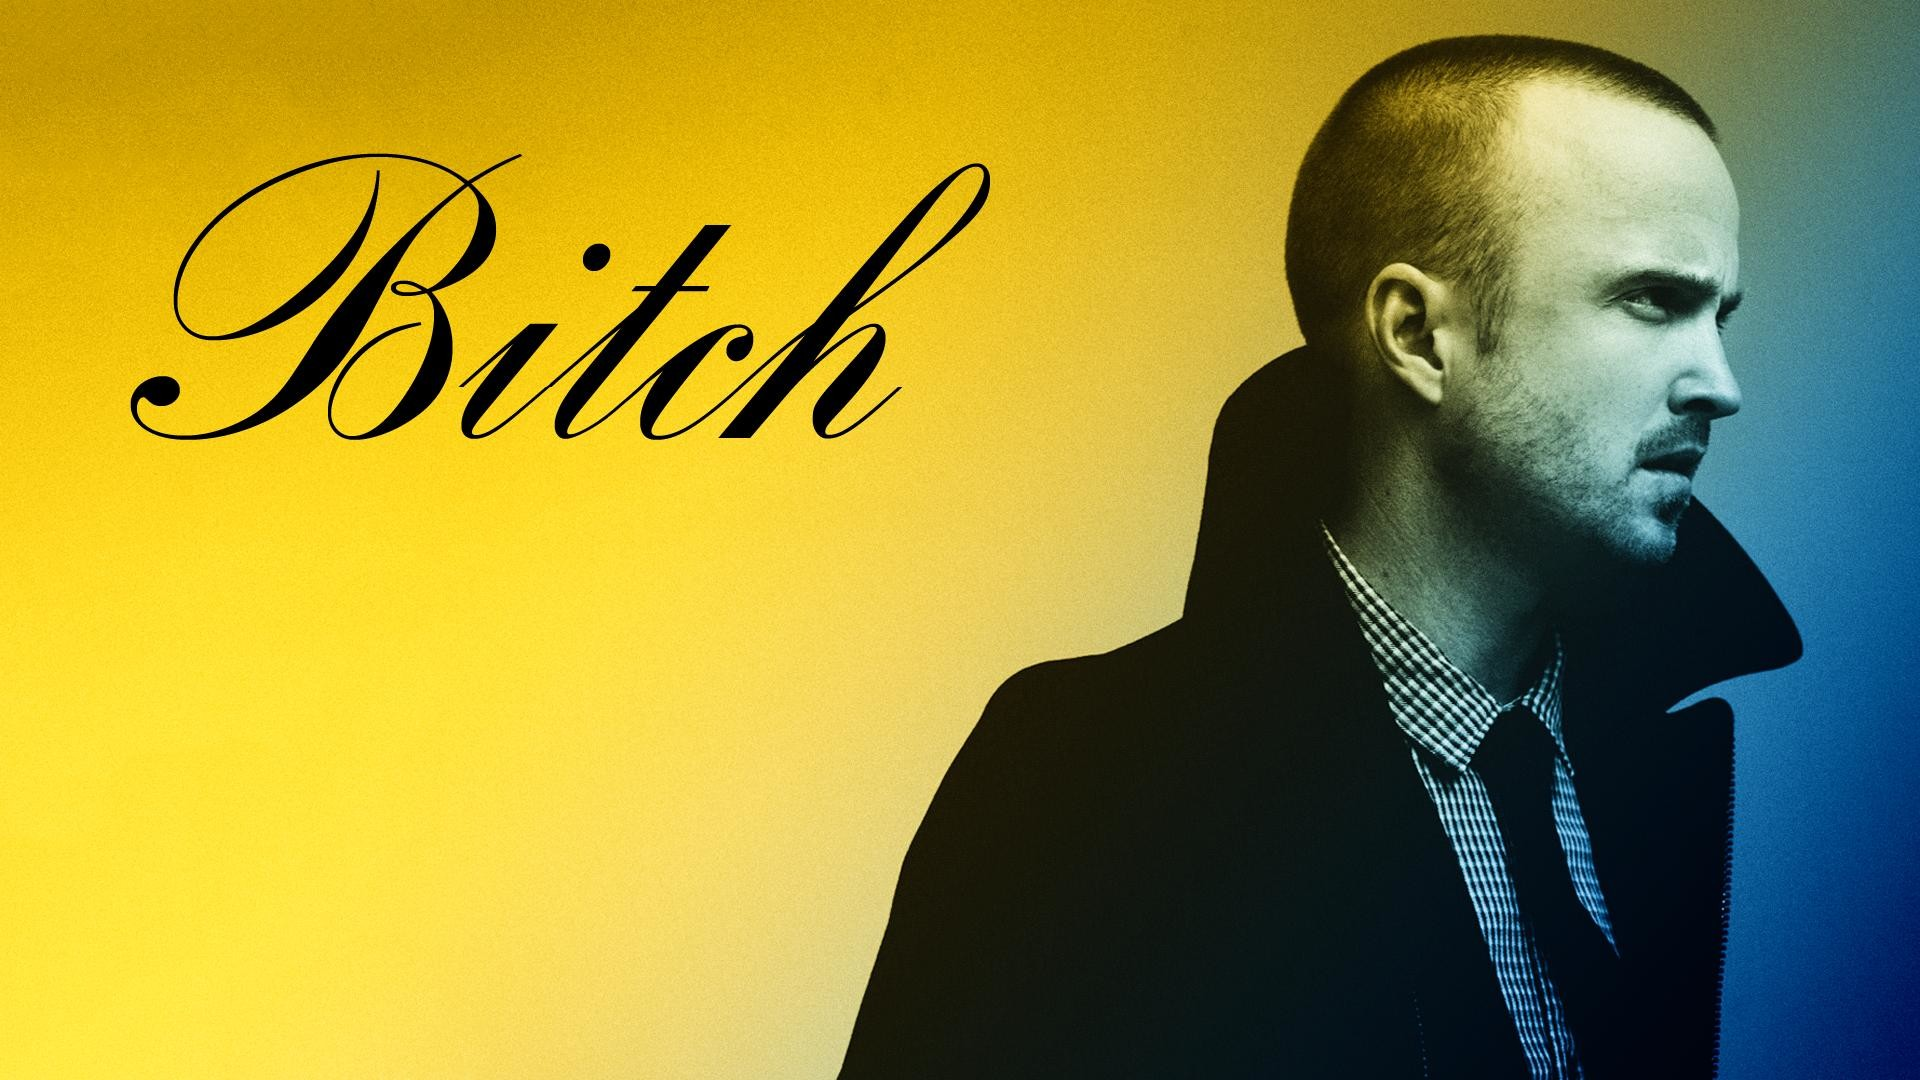 1920x1080 Breaking Bad wallpapers!